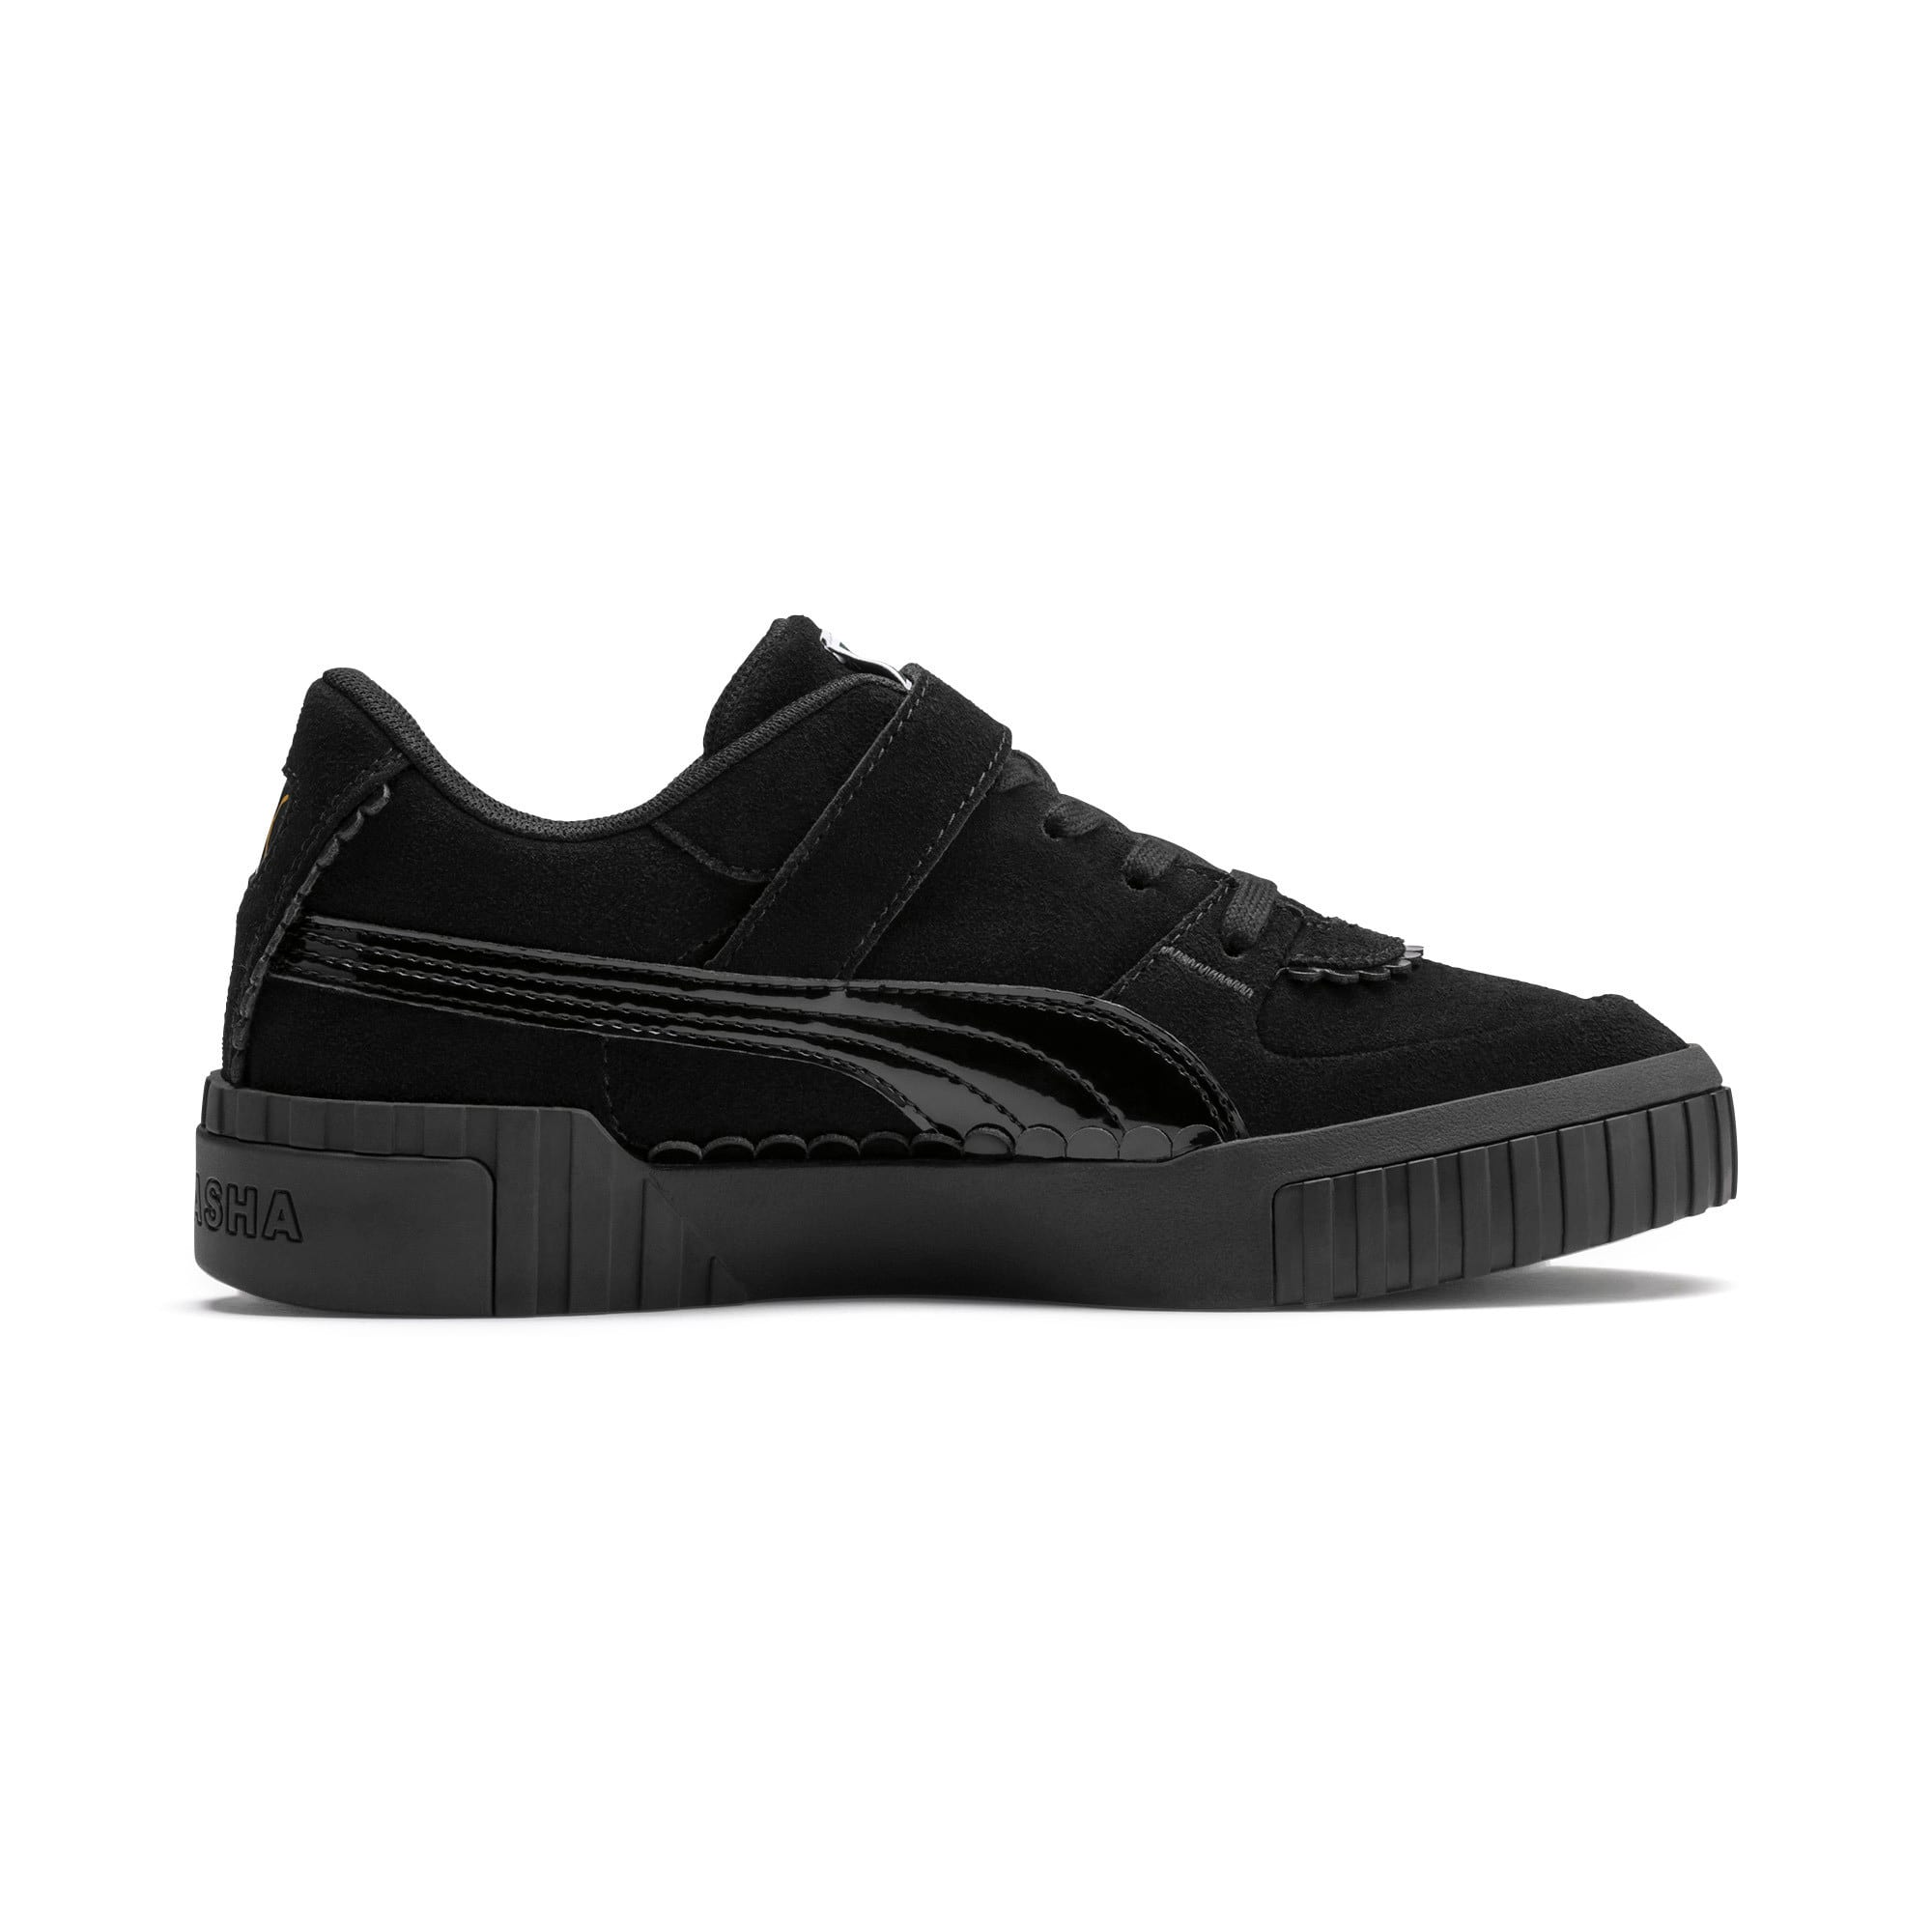 Thumbnail 6 of PUMA x TYAKASHA Cali Women's Sneakers, Puma Black, medium